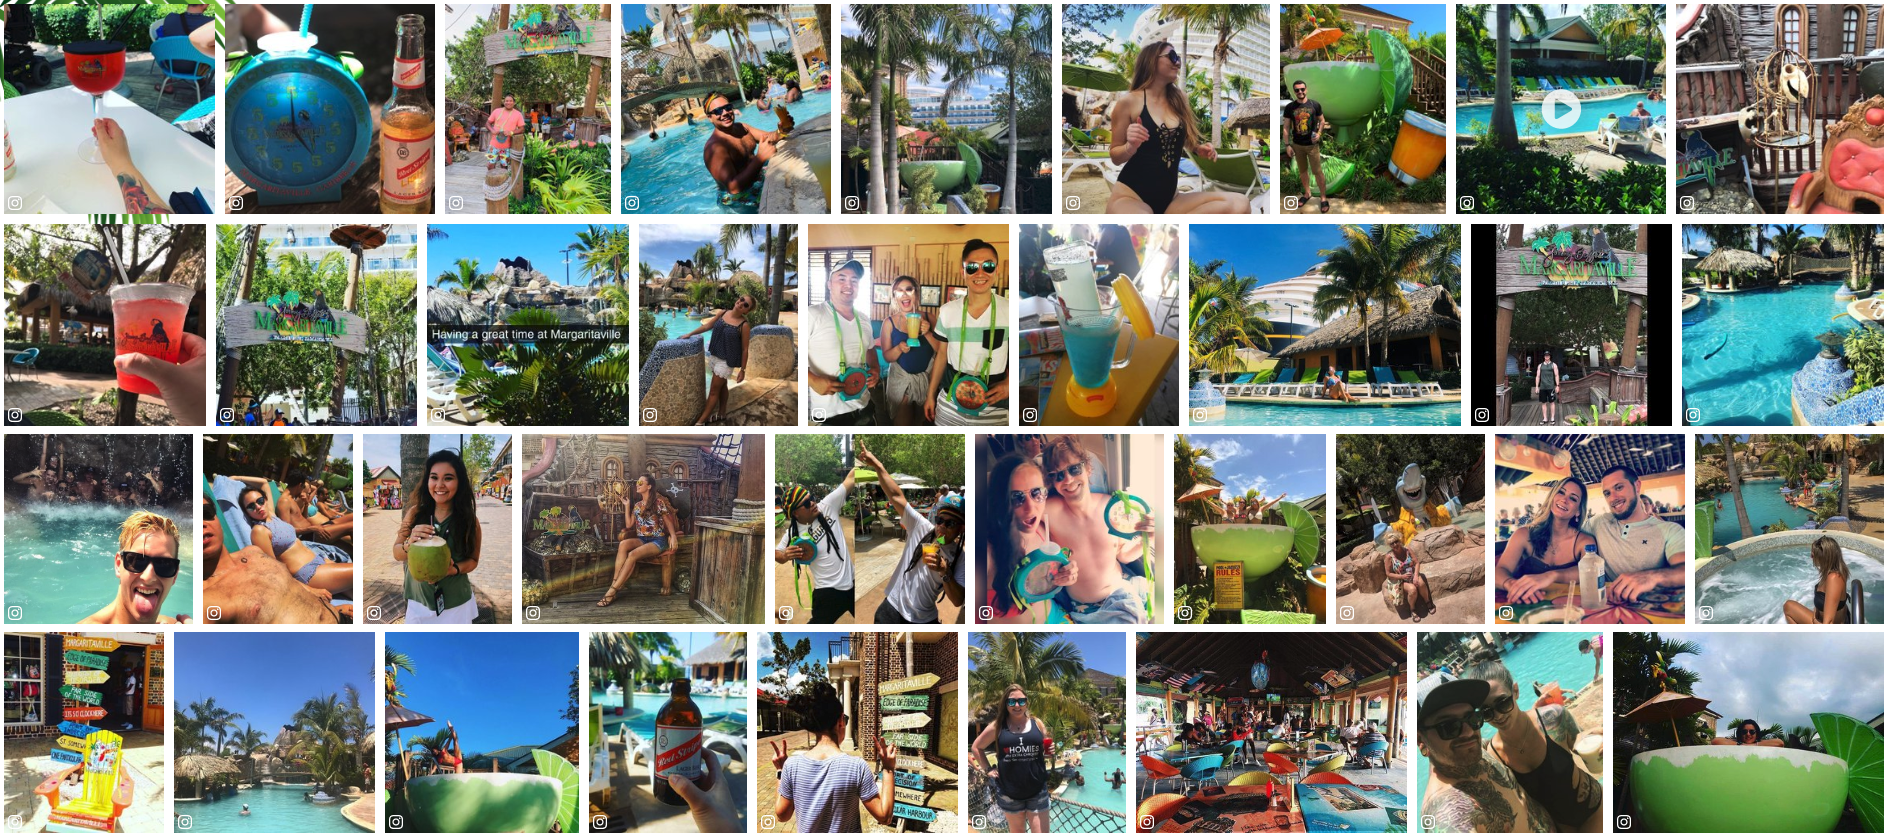 Margaritaville Caribbean Falmouth image gallery